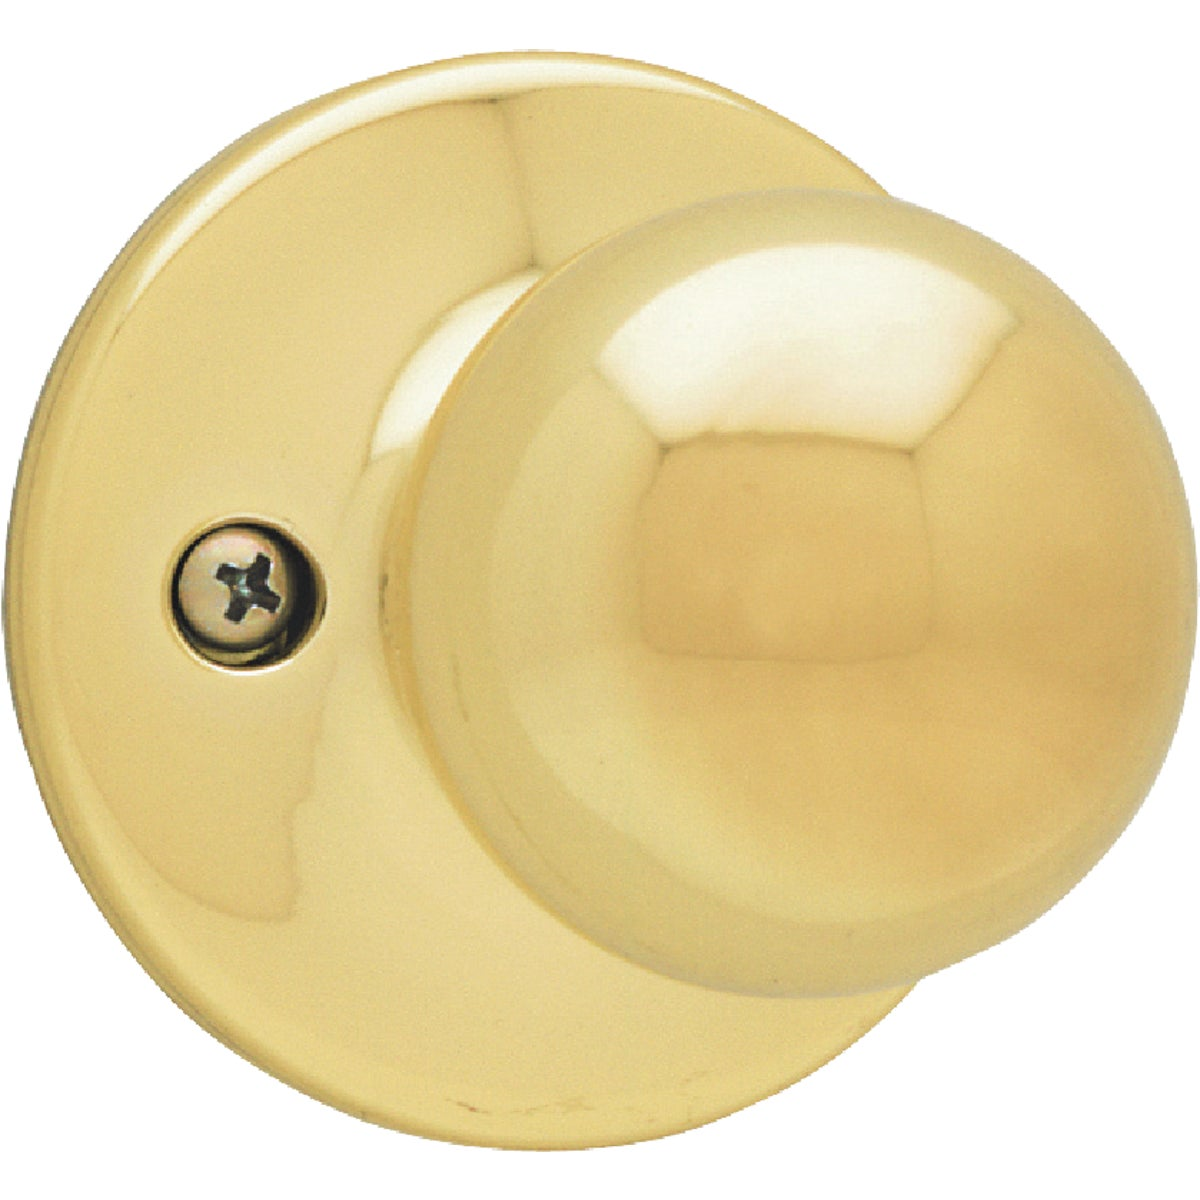 PB CP POLO DUMMY LOCK - 488P 3 CP by Kwikset